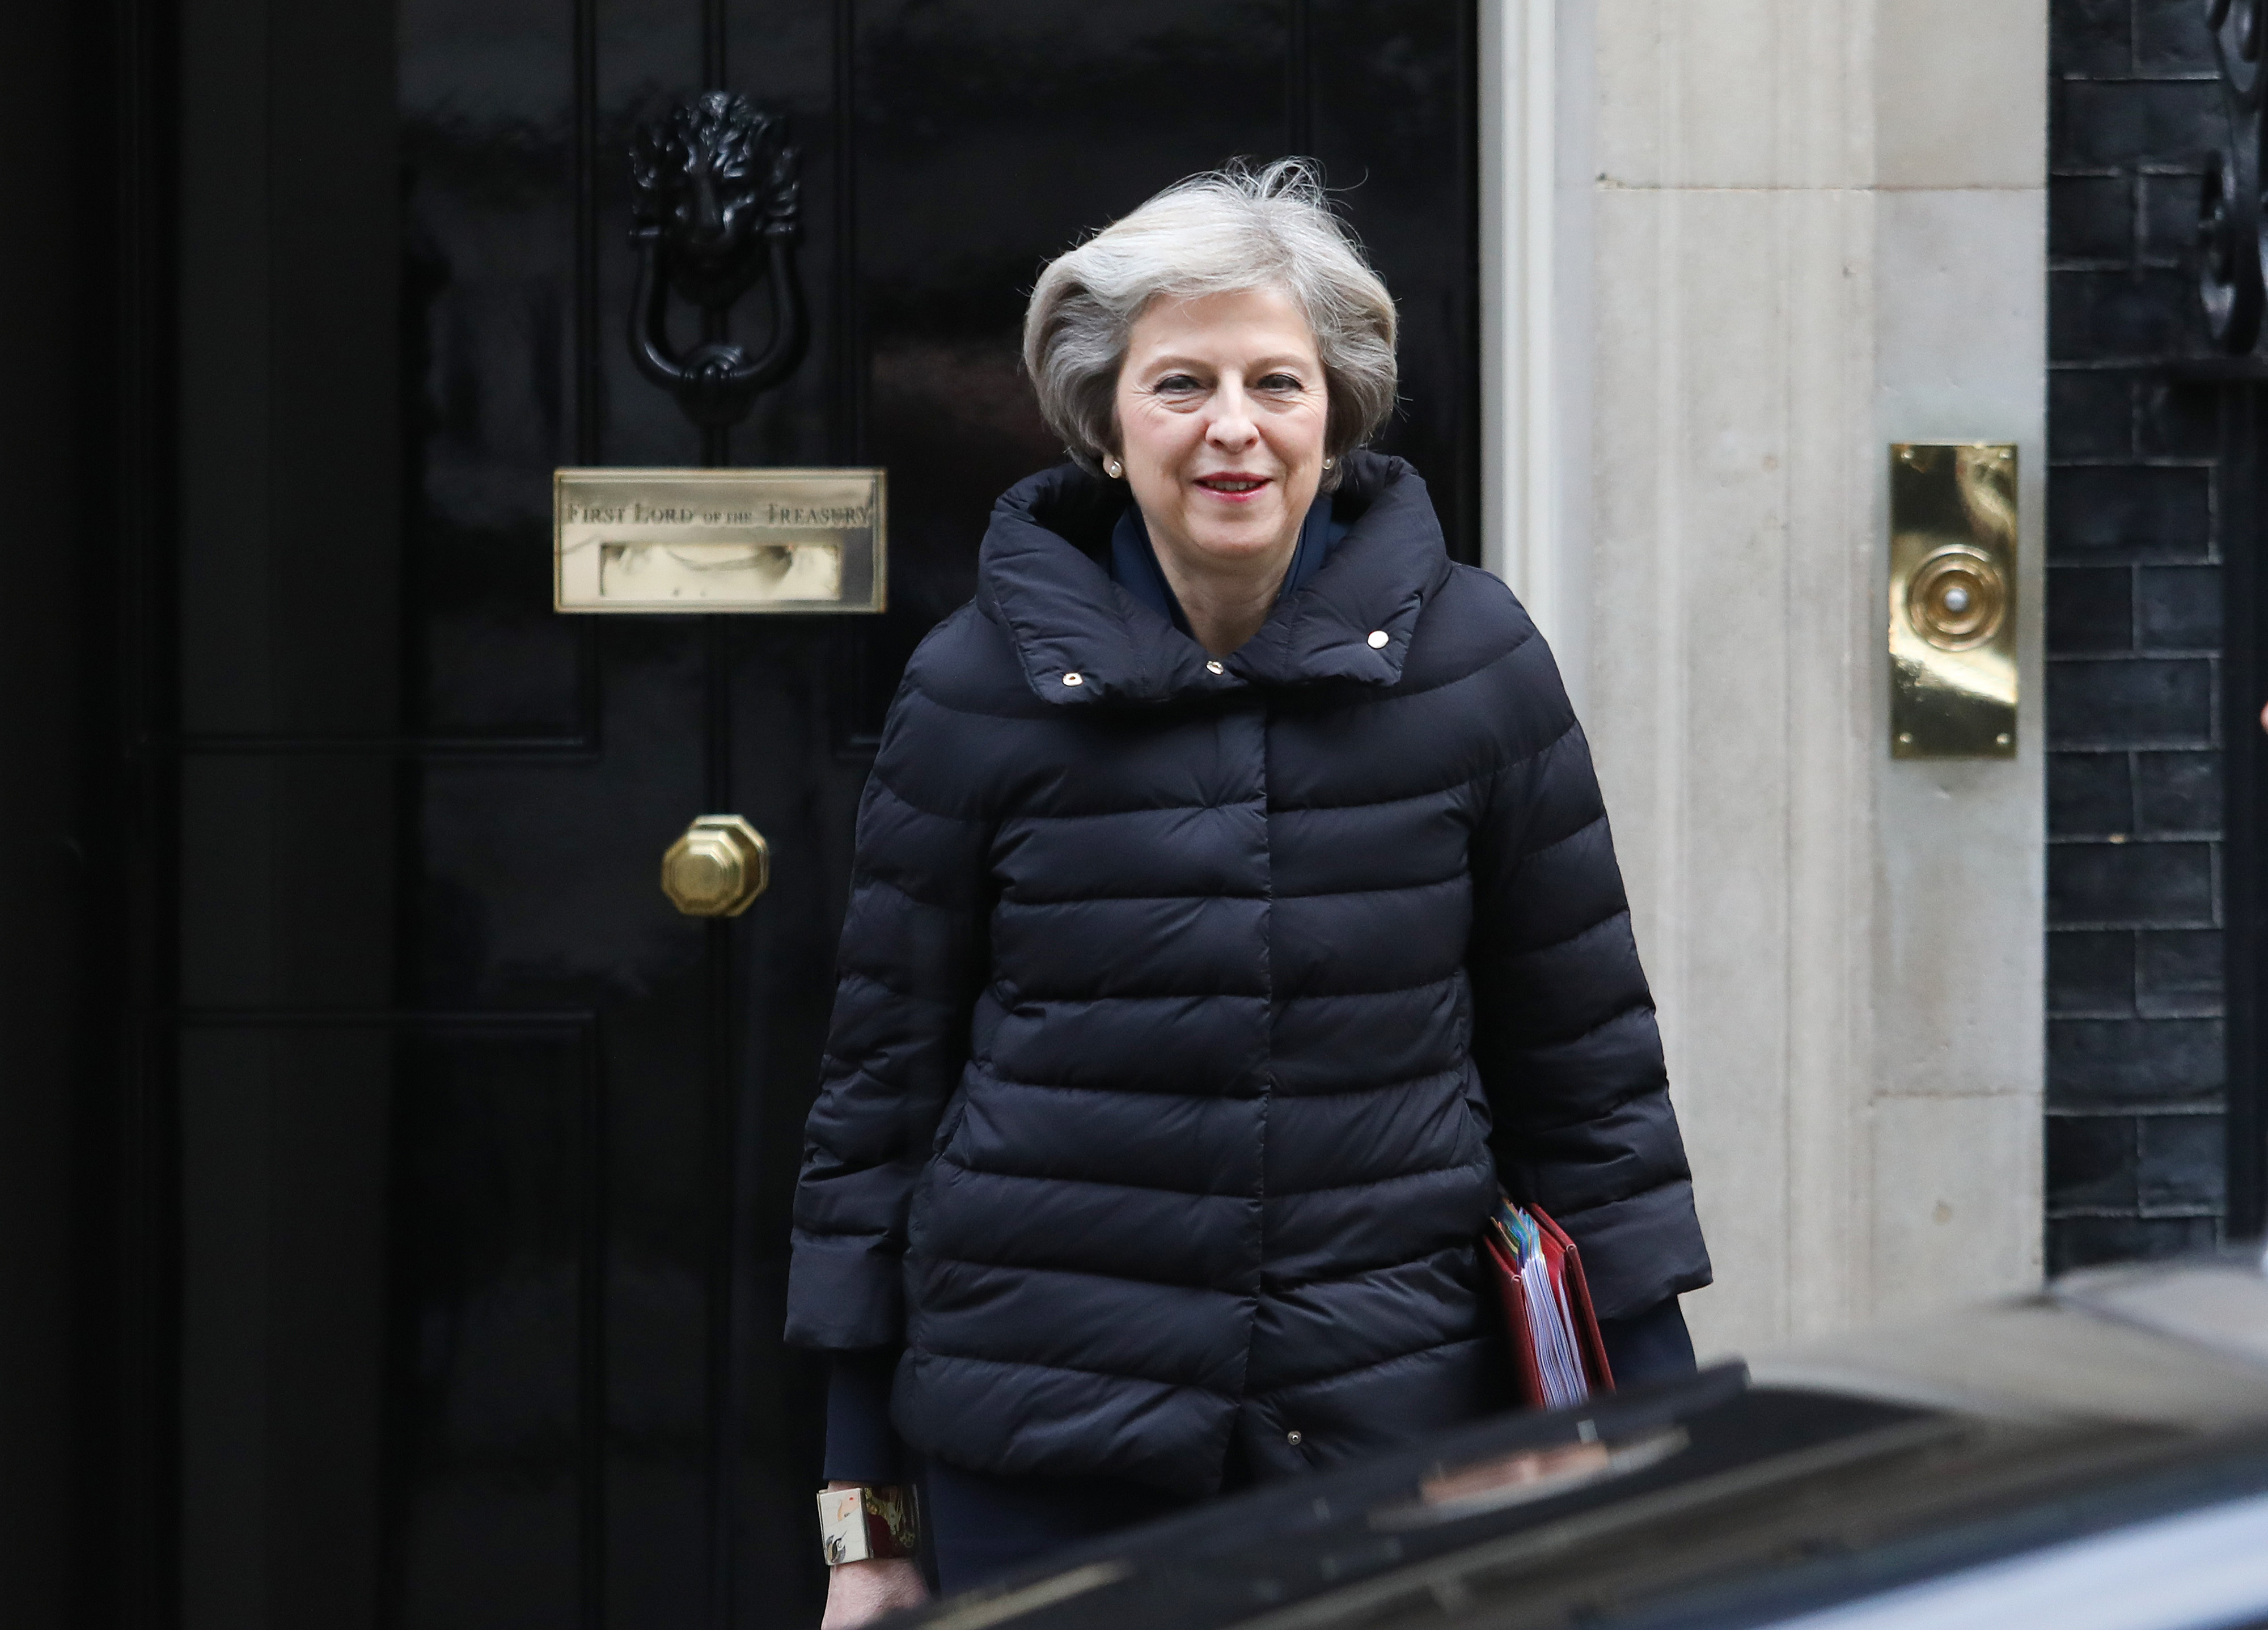 U.K. Prime Minister Theresa May Attends Weekly Question Time